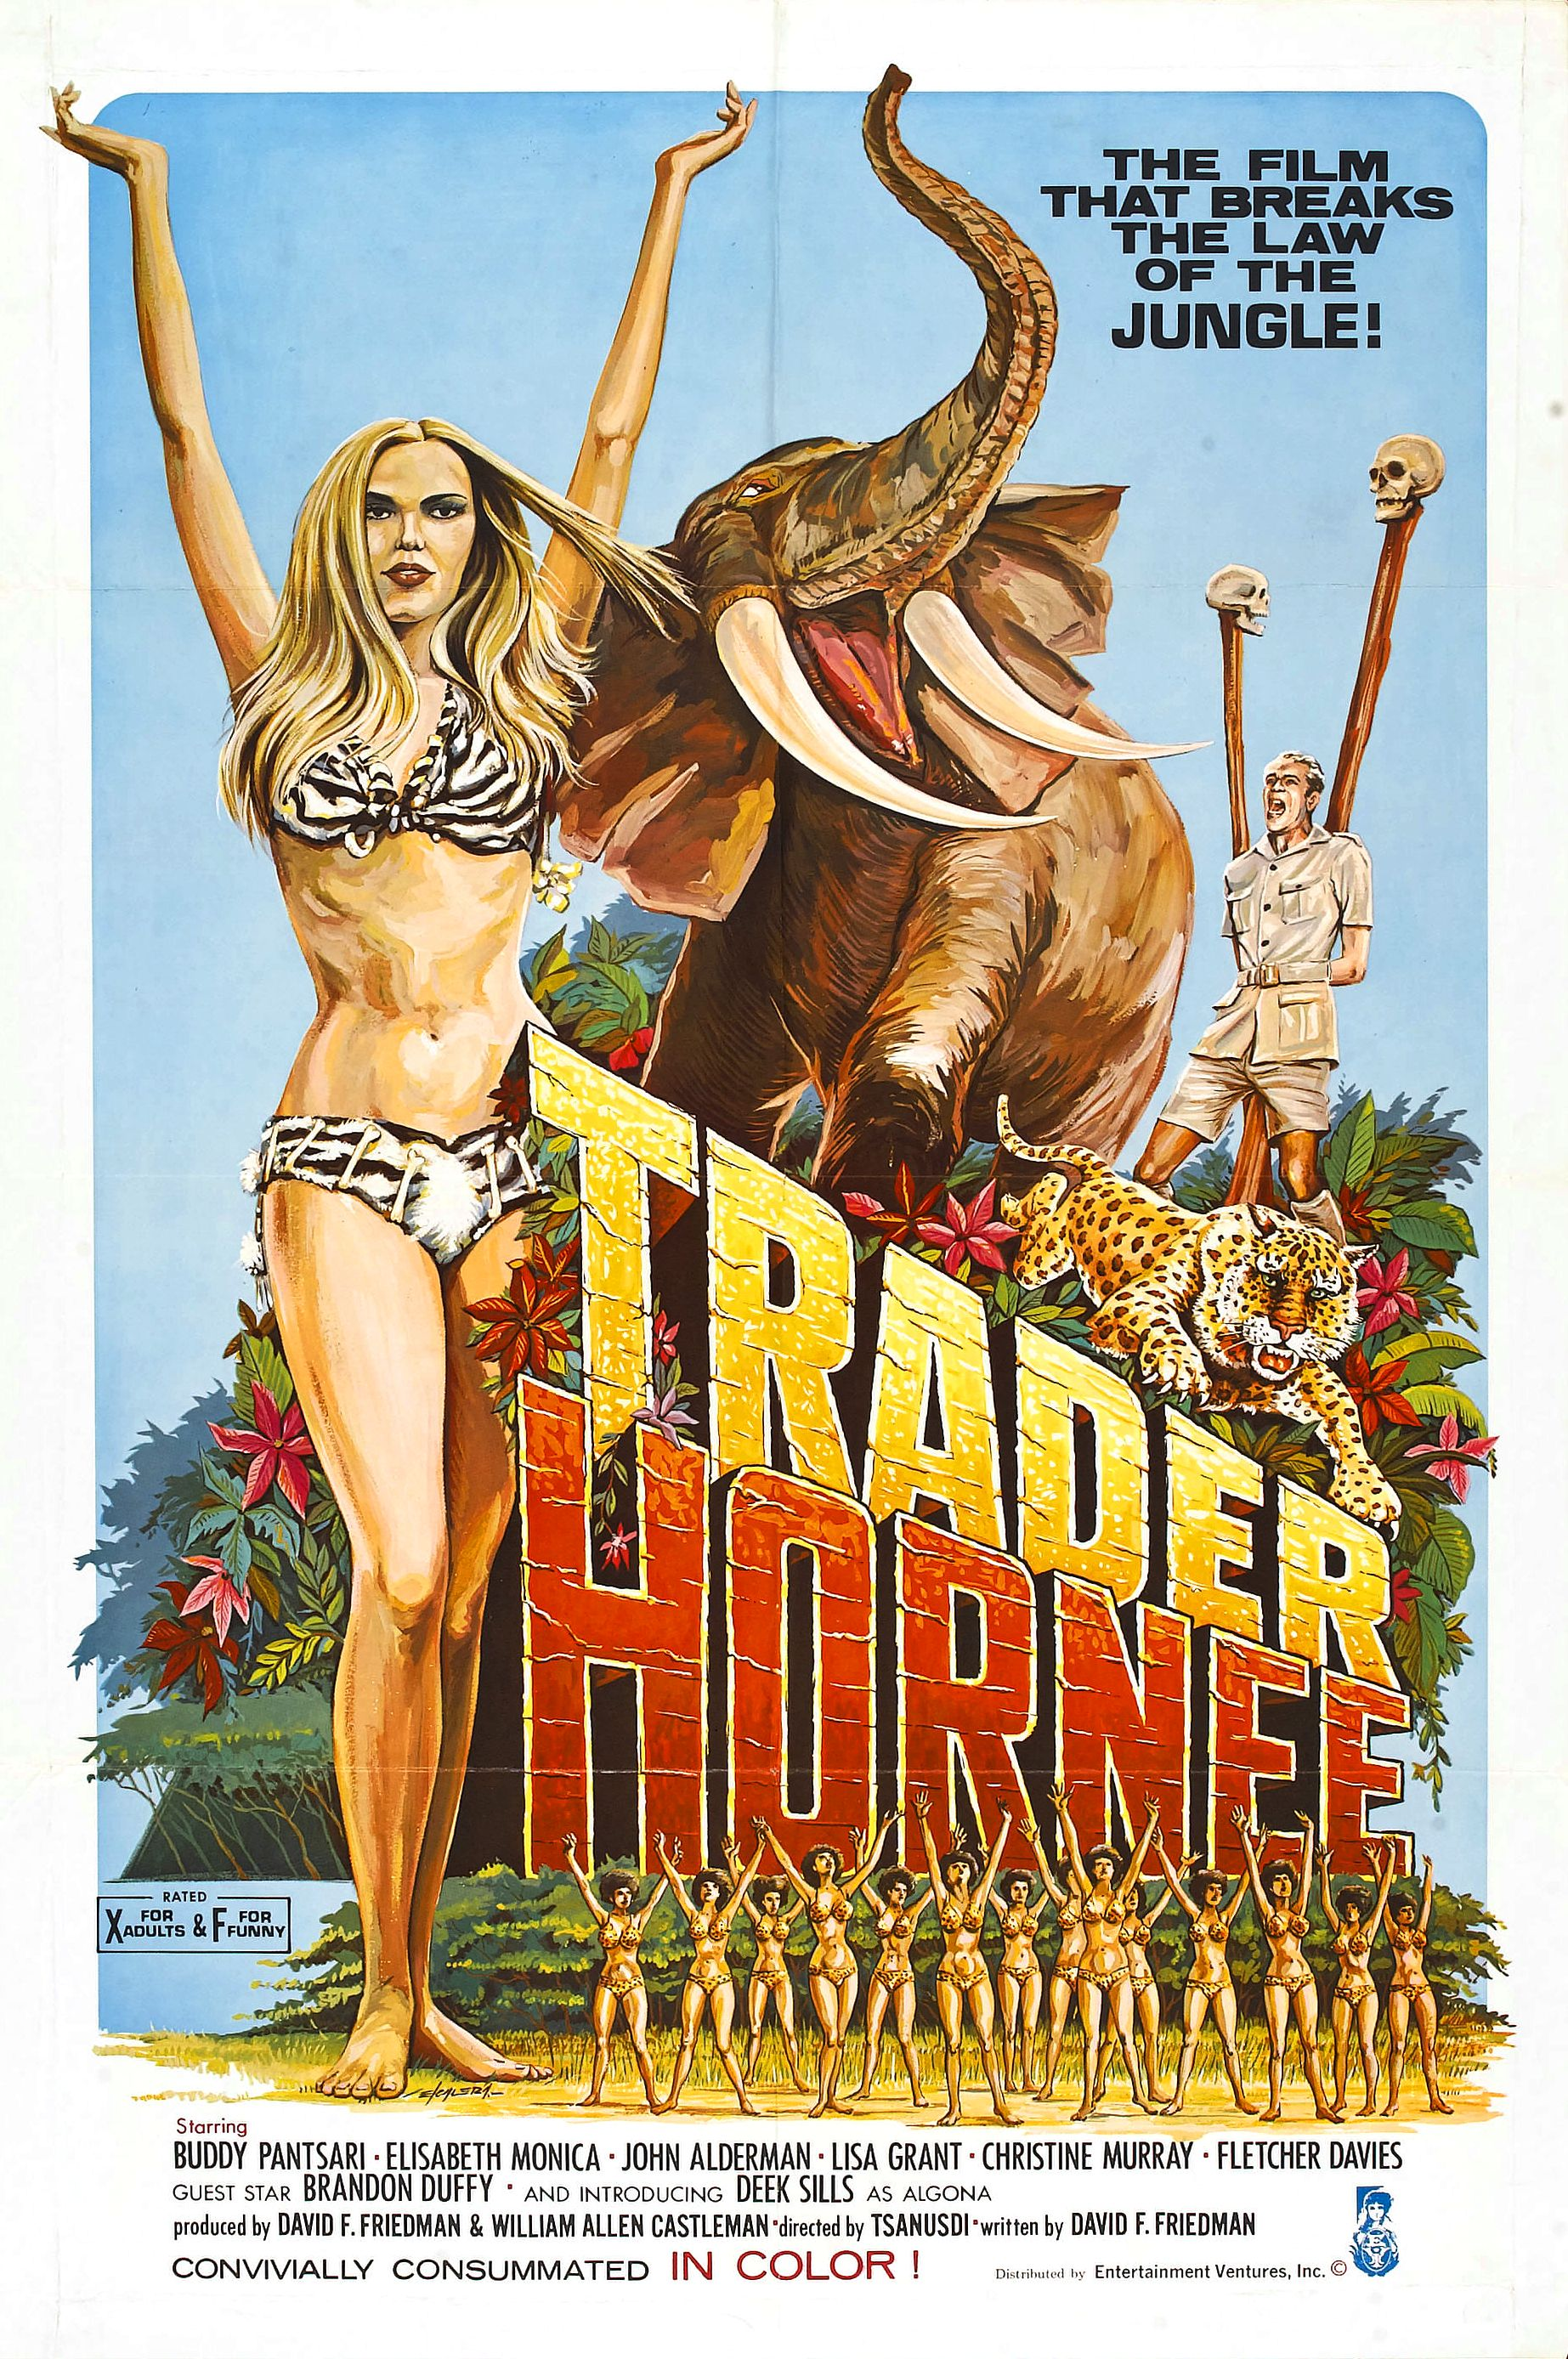 Trader Hornee Watch Full Movie Free Online